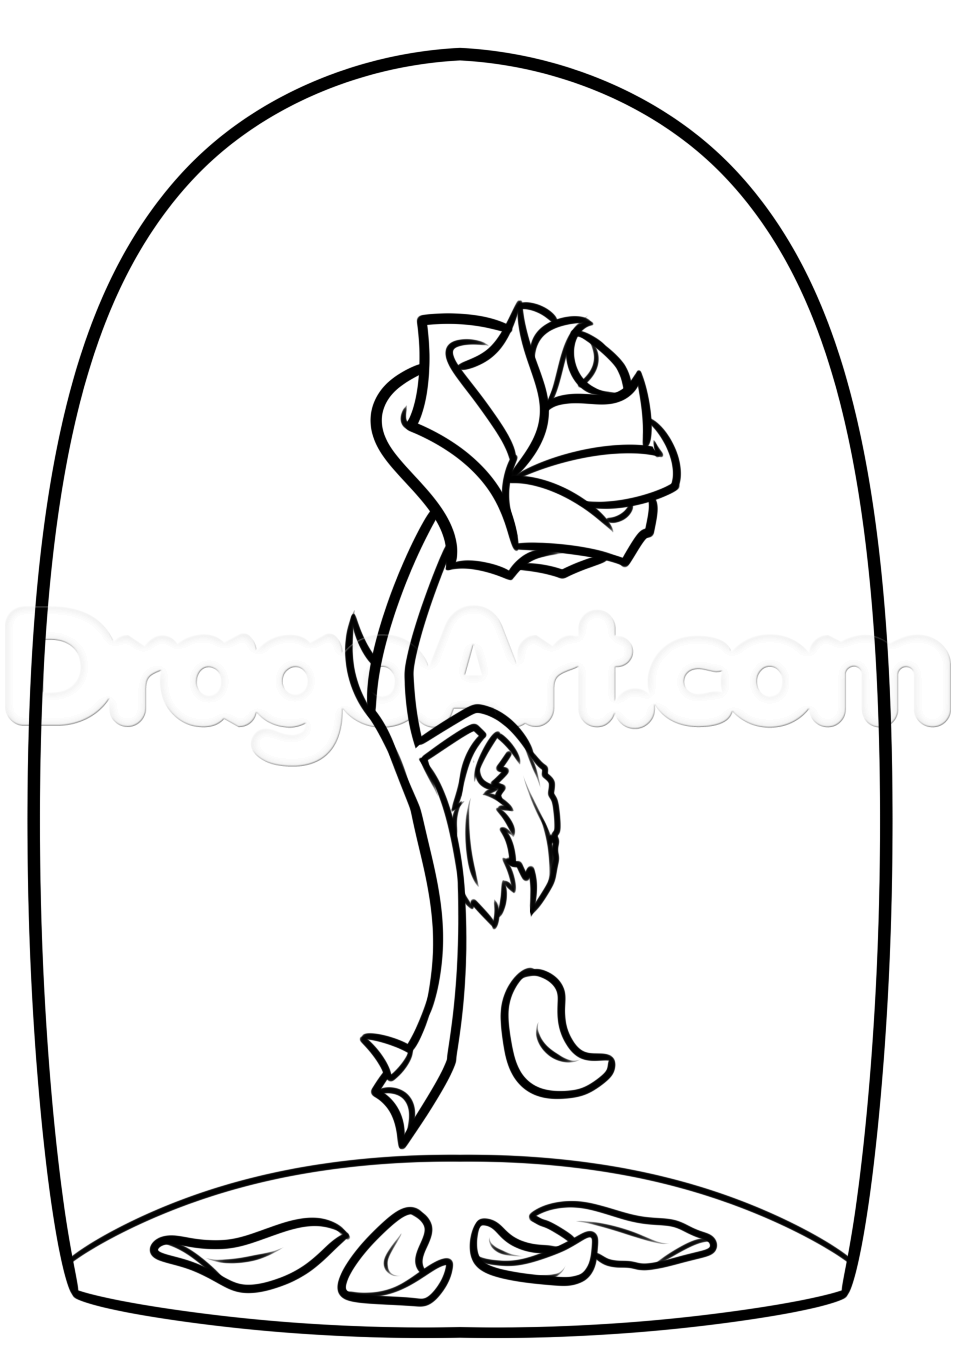 Drawn rose beauty and the beast The and beauty rose and